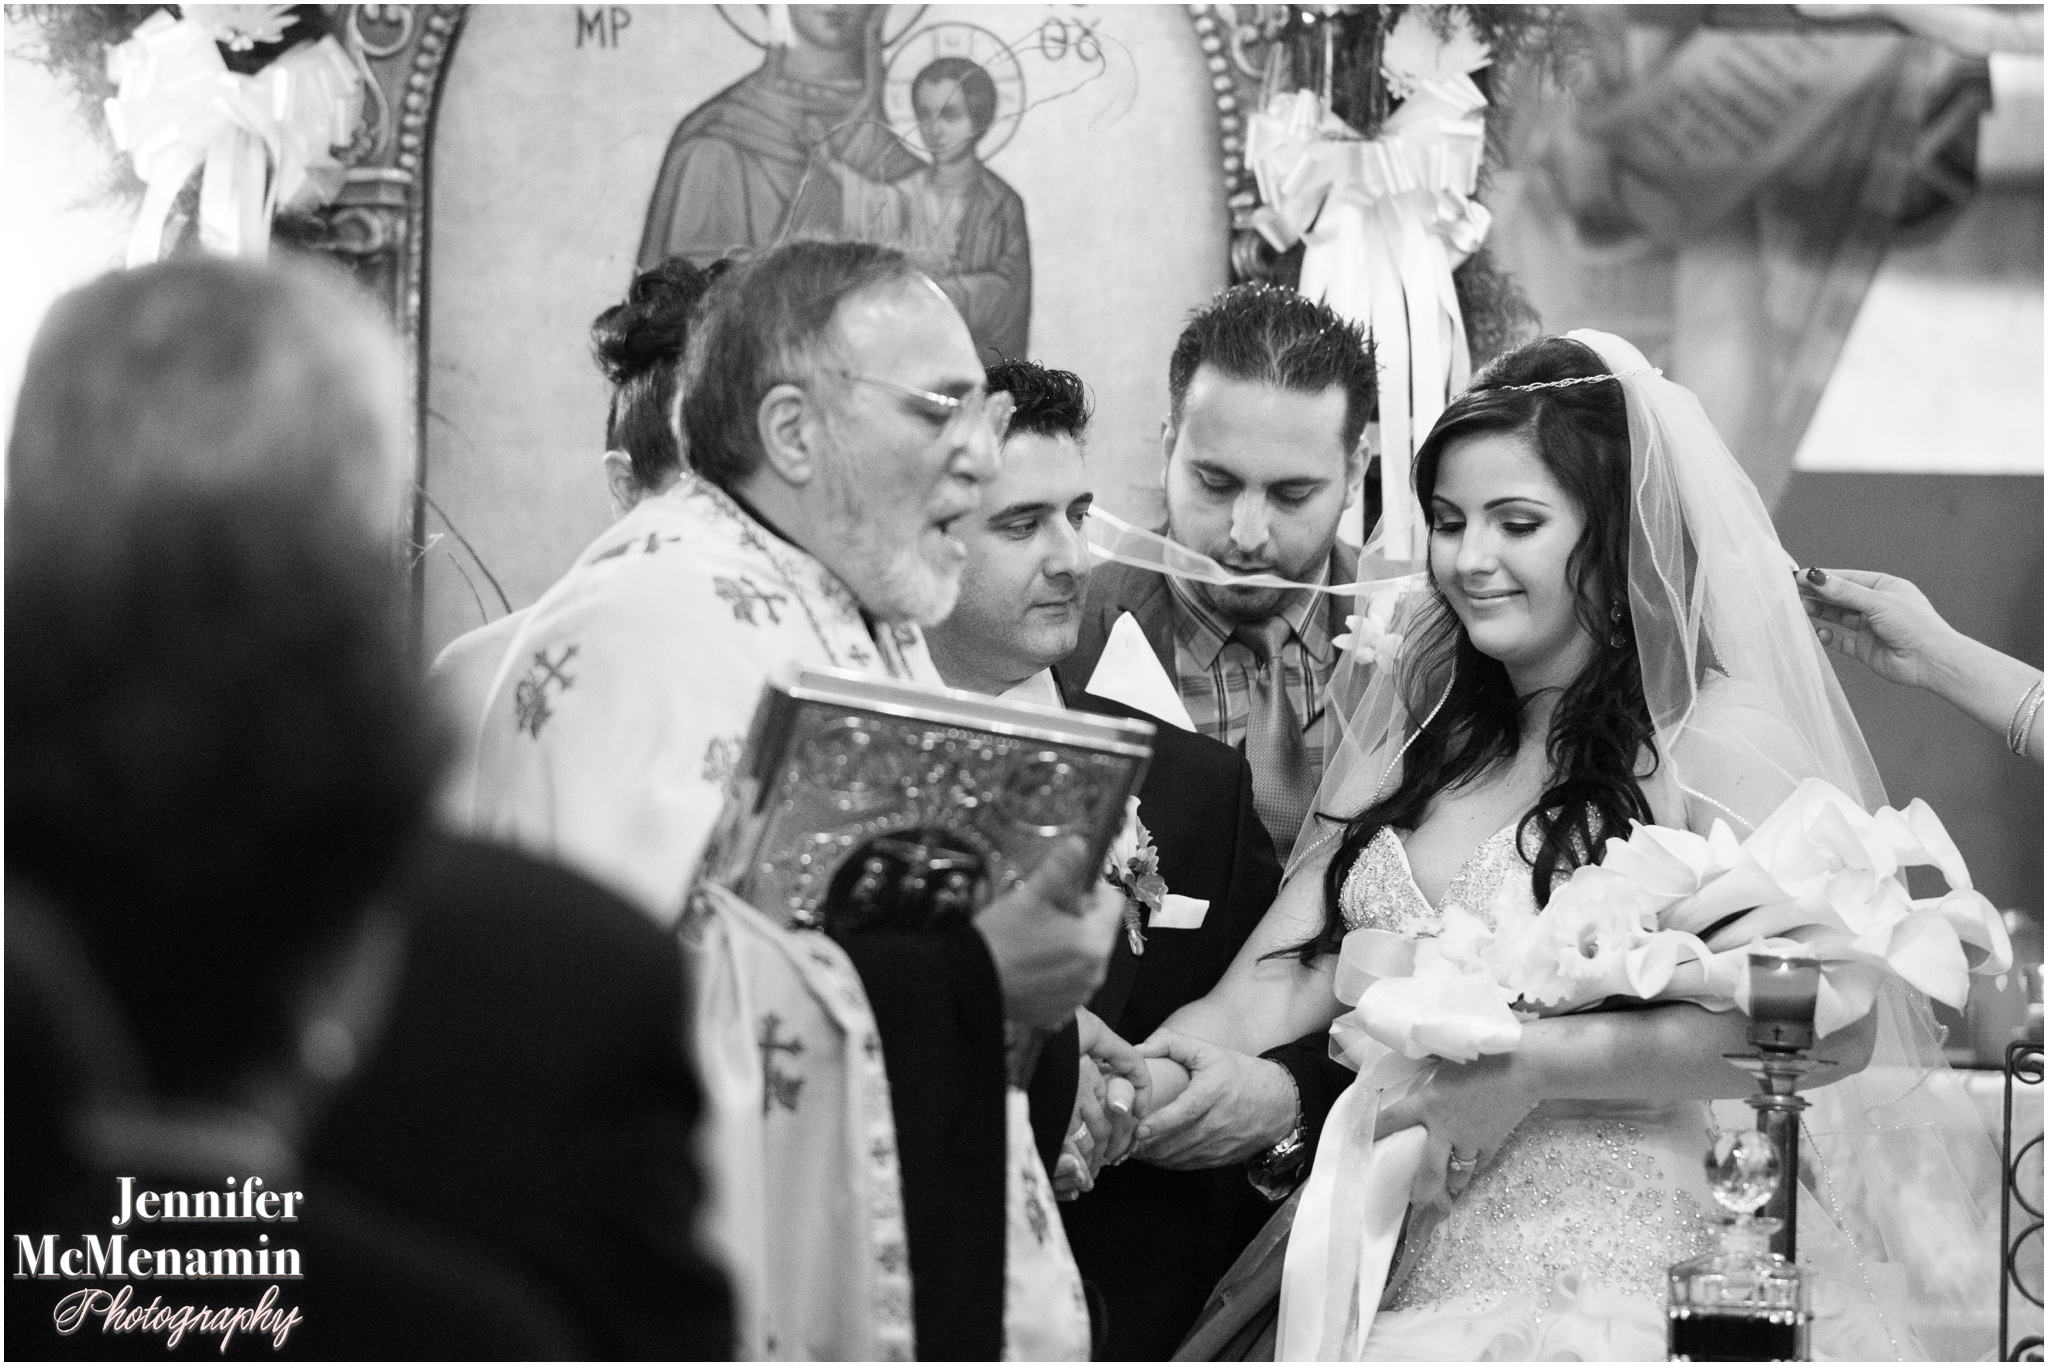 056-RigopoulosHatzinicolas_02591bw_JenniferMcMenaminPhotography_St-Nicholas-Greek-Orthodox-Church_Martins-West_Baltimore-wedding-photography_Baltimore-wedding-photographer